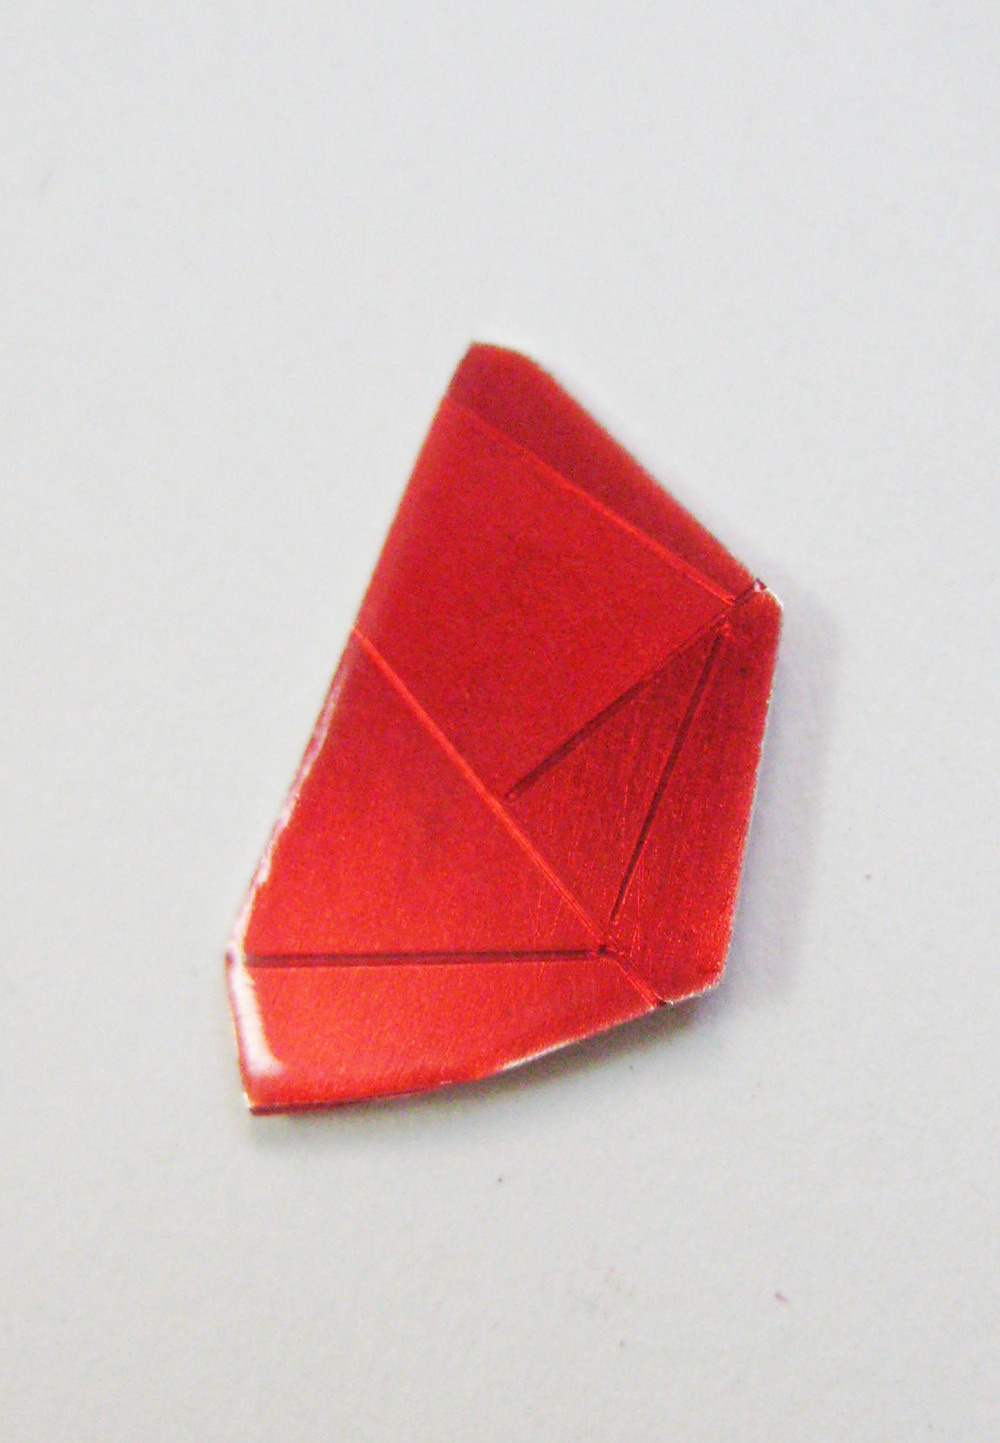 14-Single Red Pin Gem-Voegele.jpg